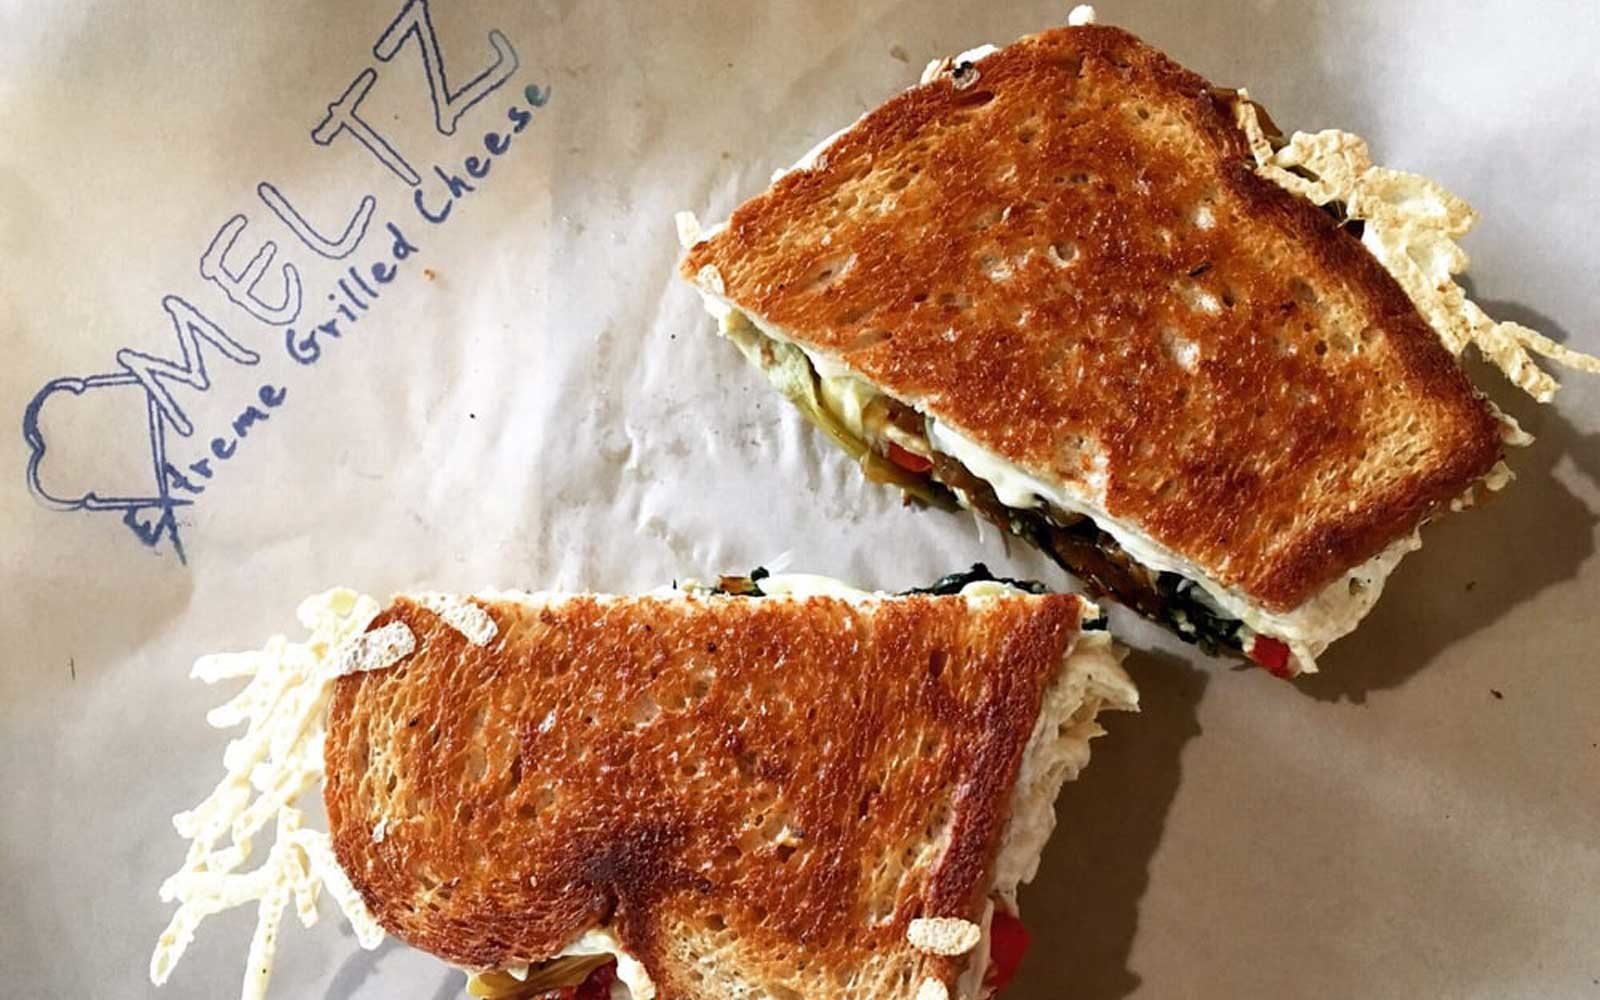 Meltz Extreme Grilled Cheese